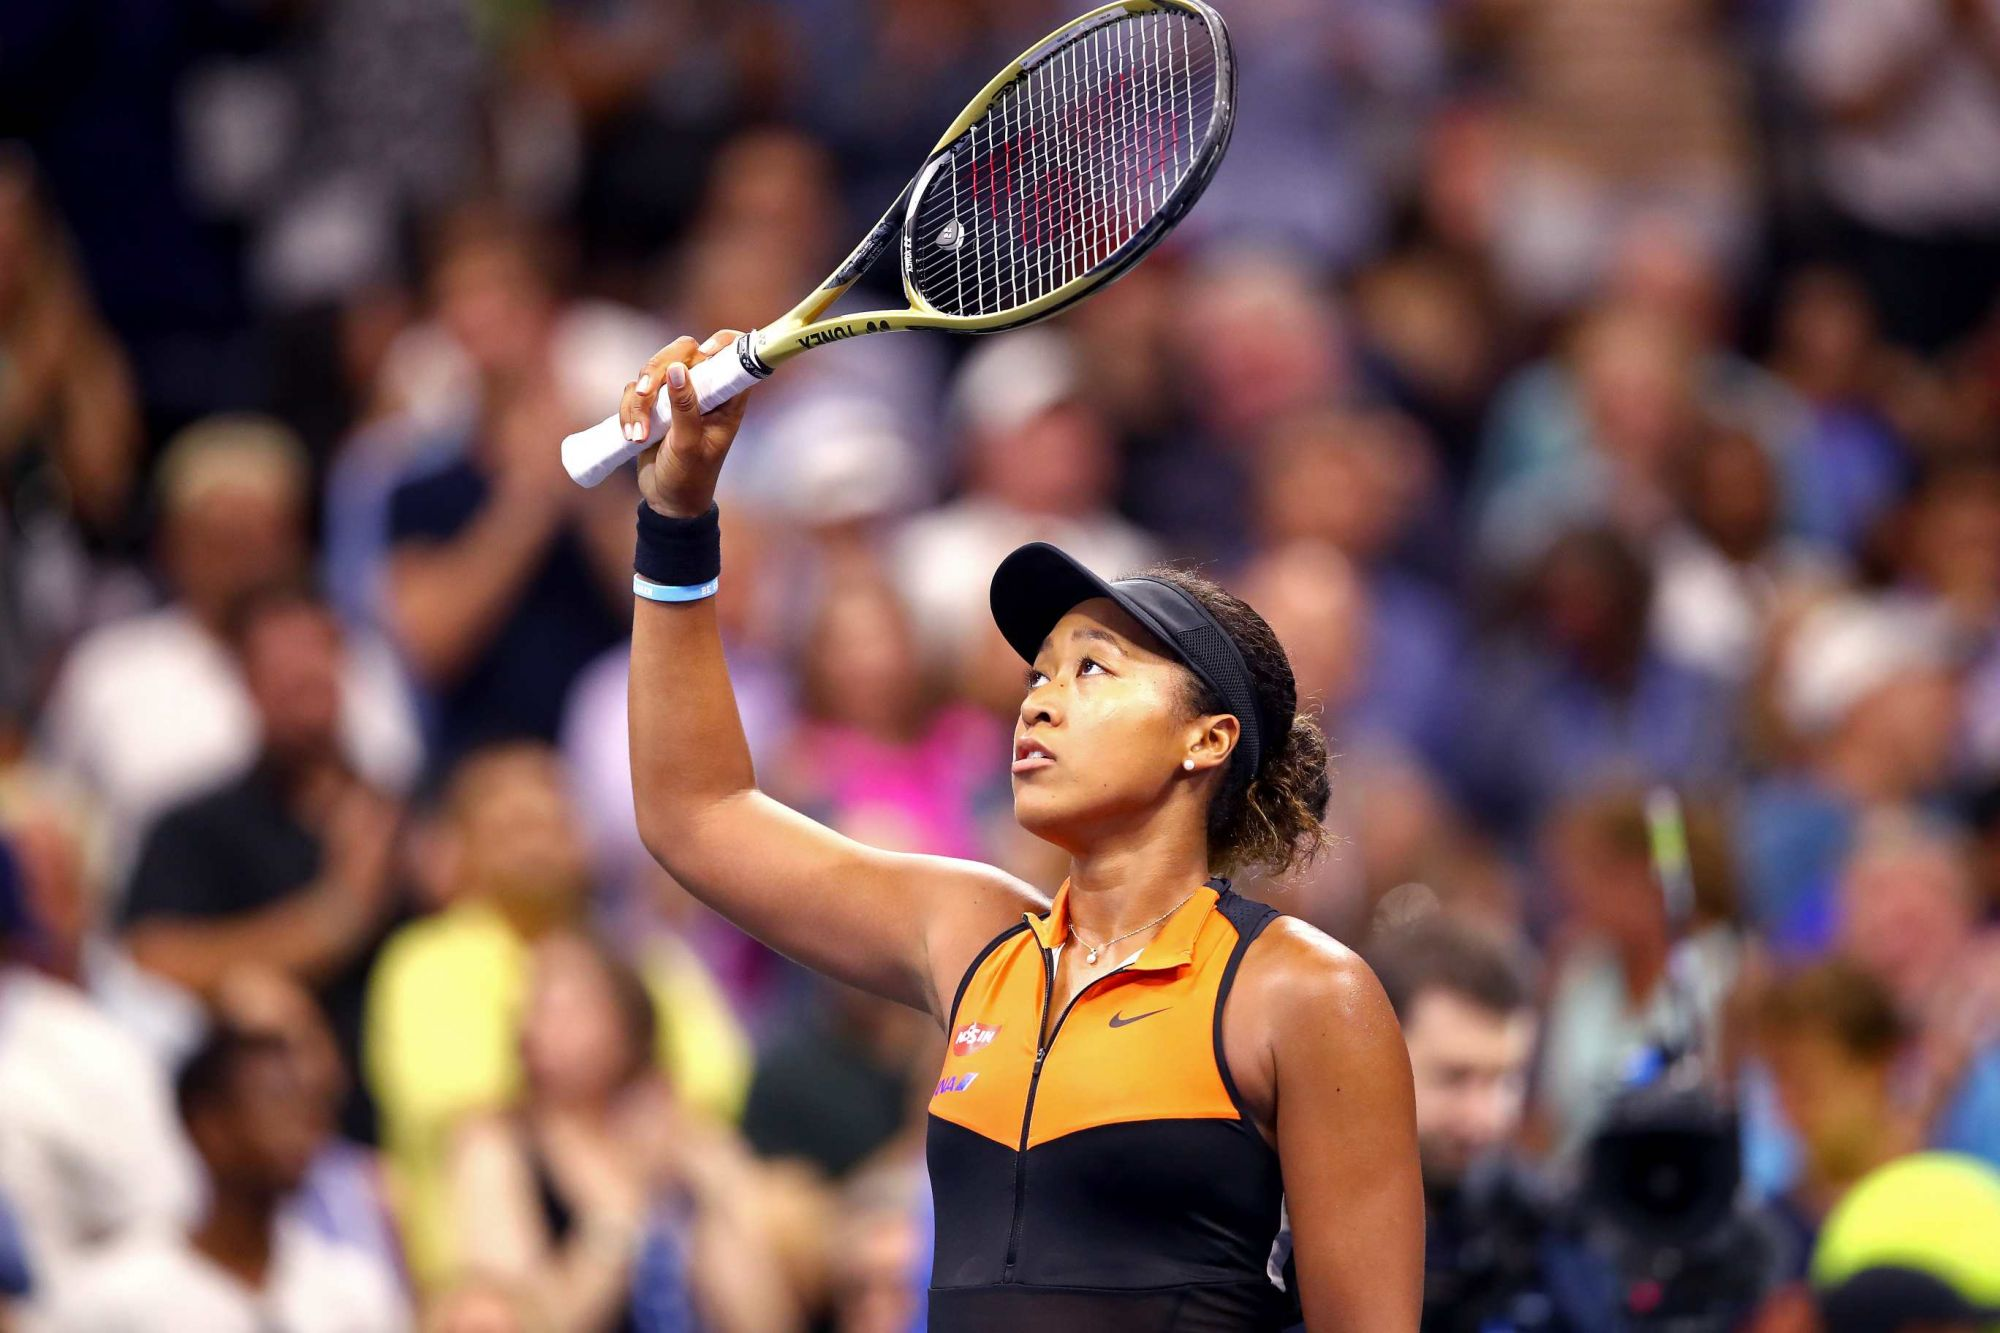 Naomi Osaka withdraws from the French Open